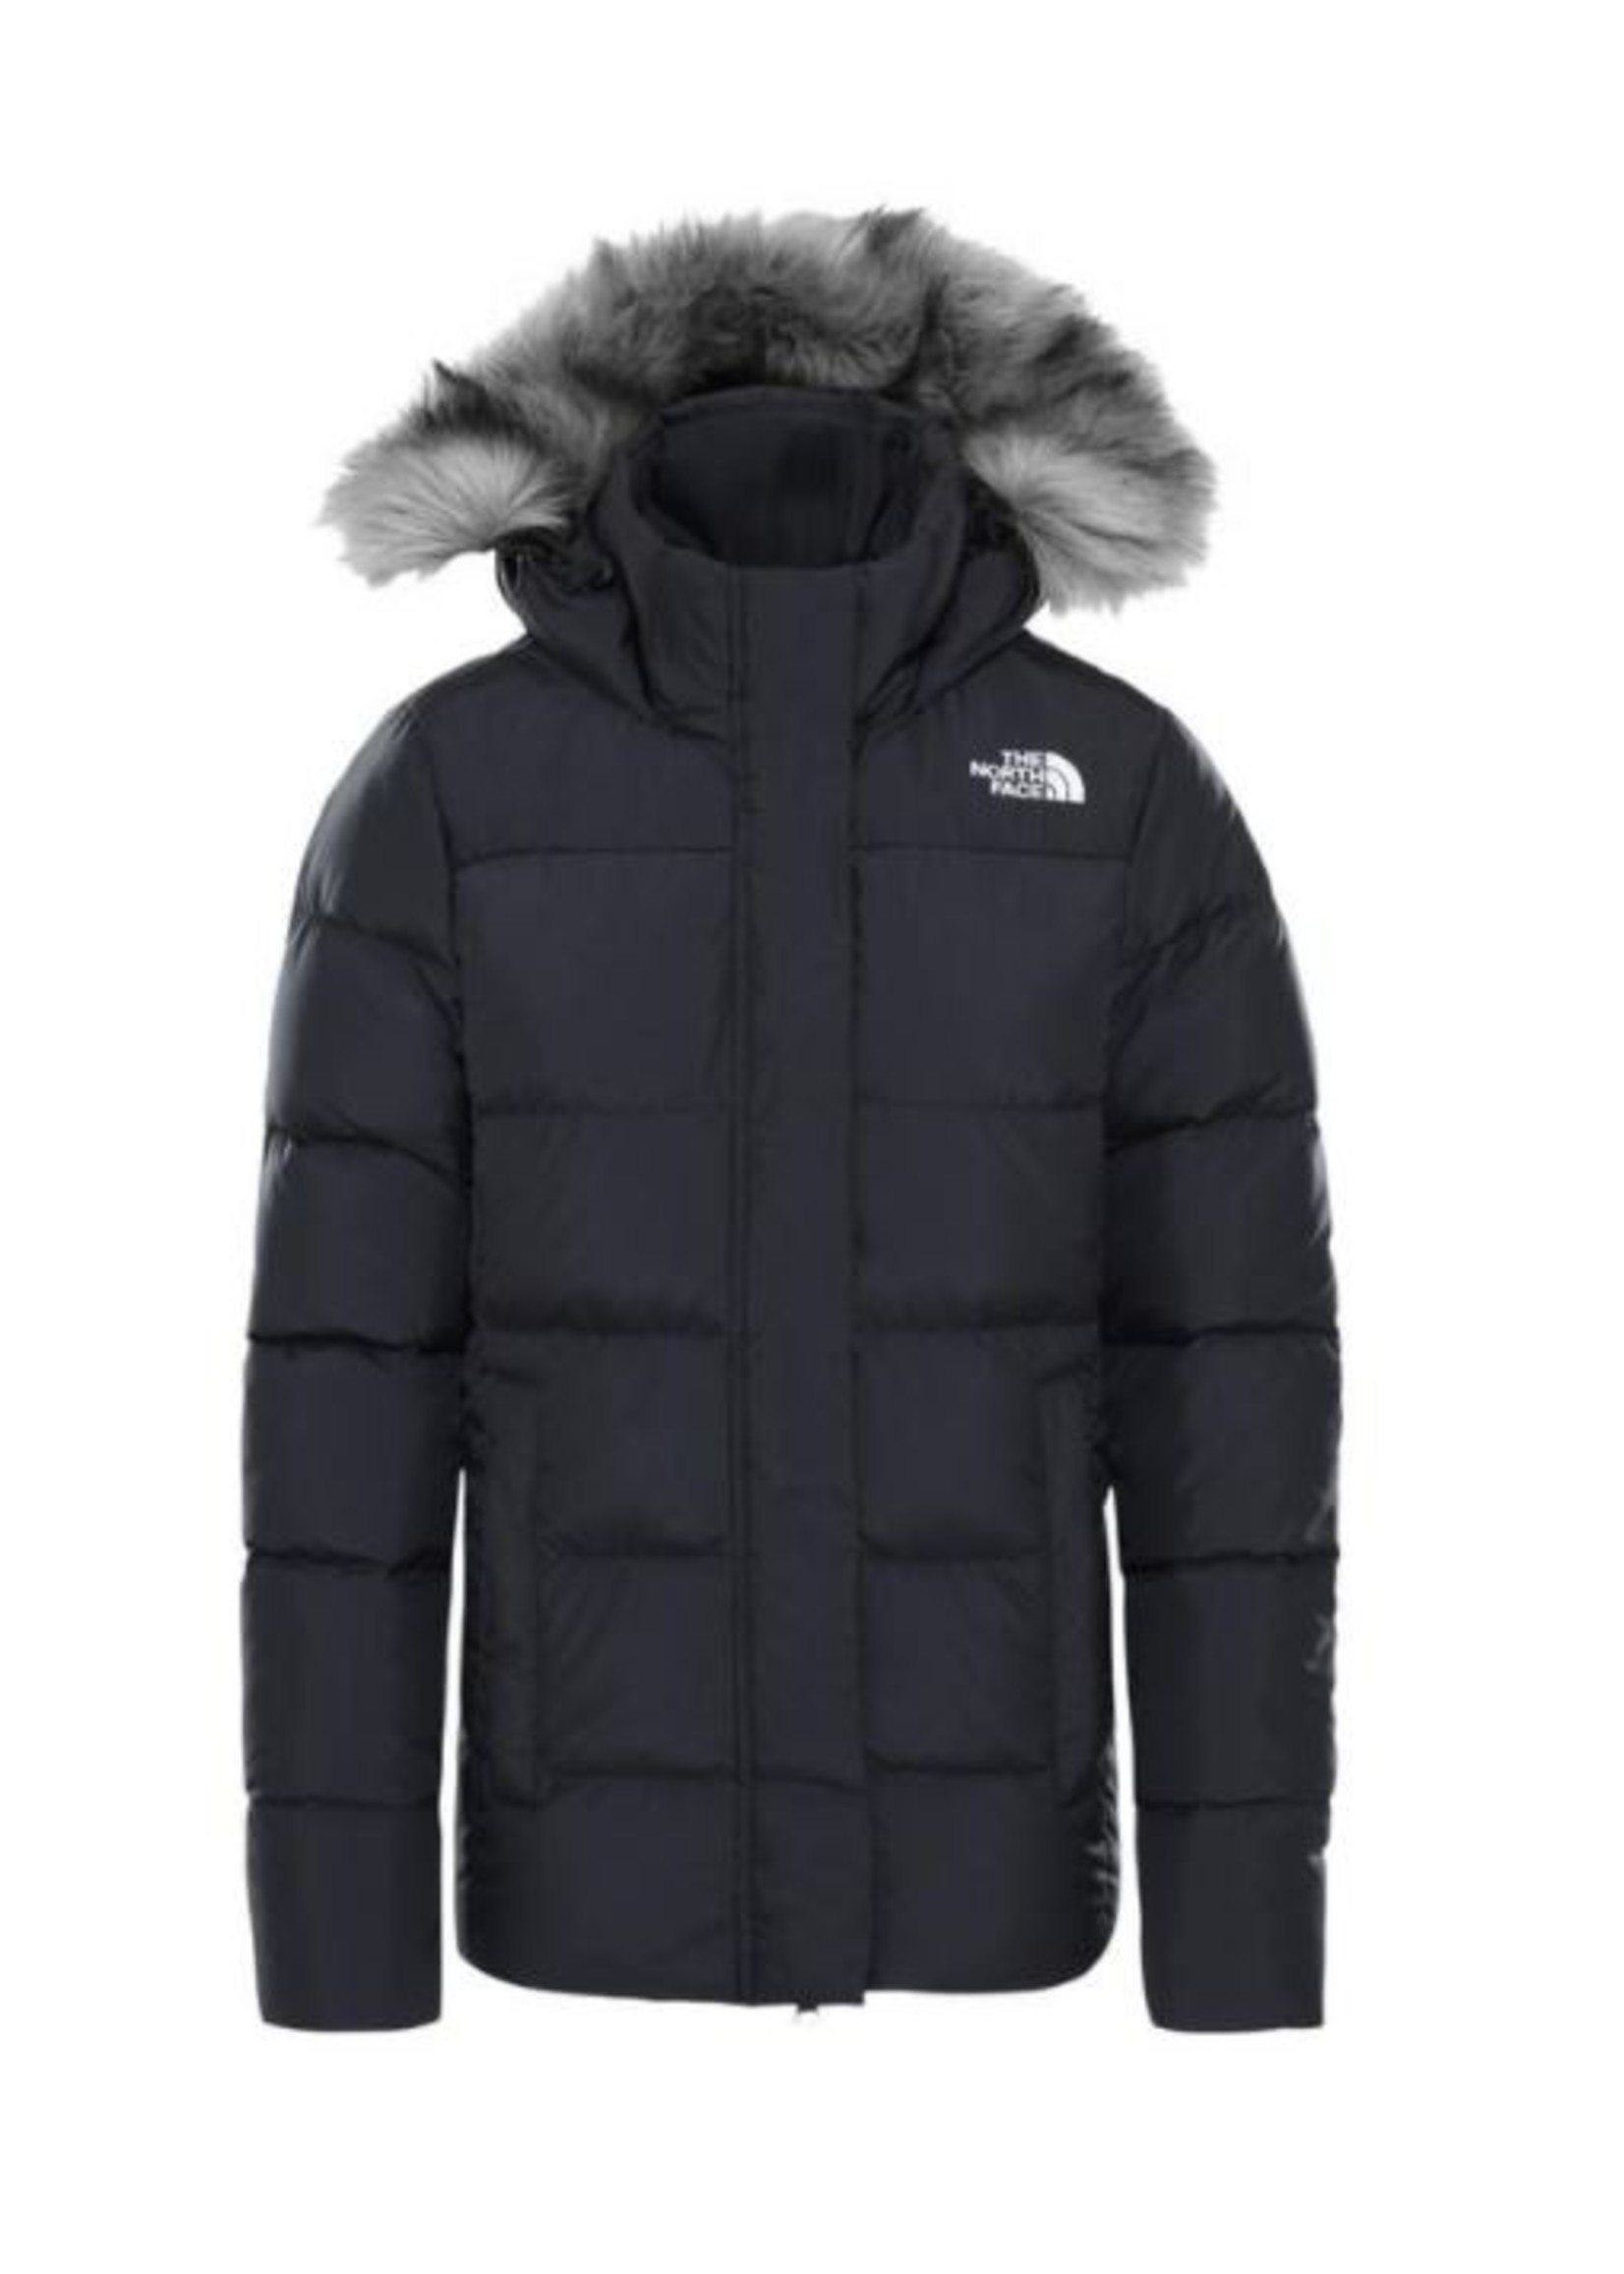 The North Face W GOTHAM JKT NF0A4R33